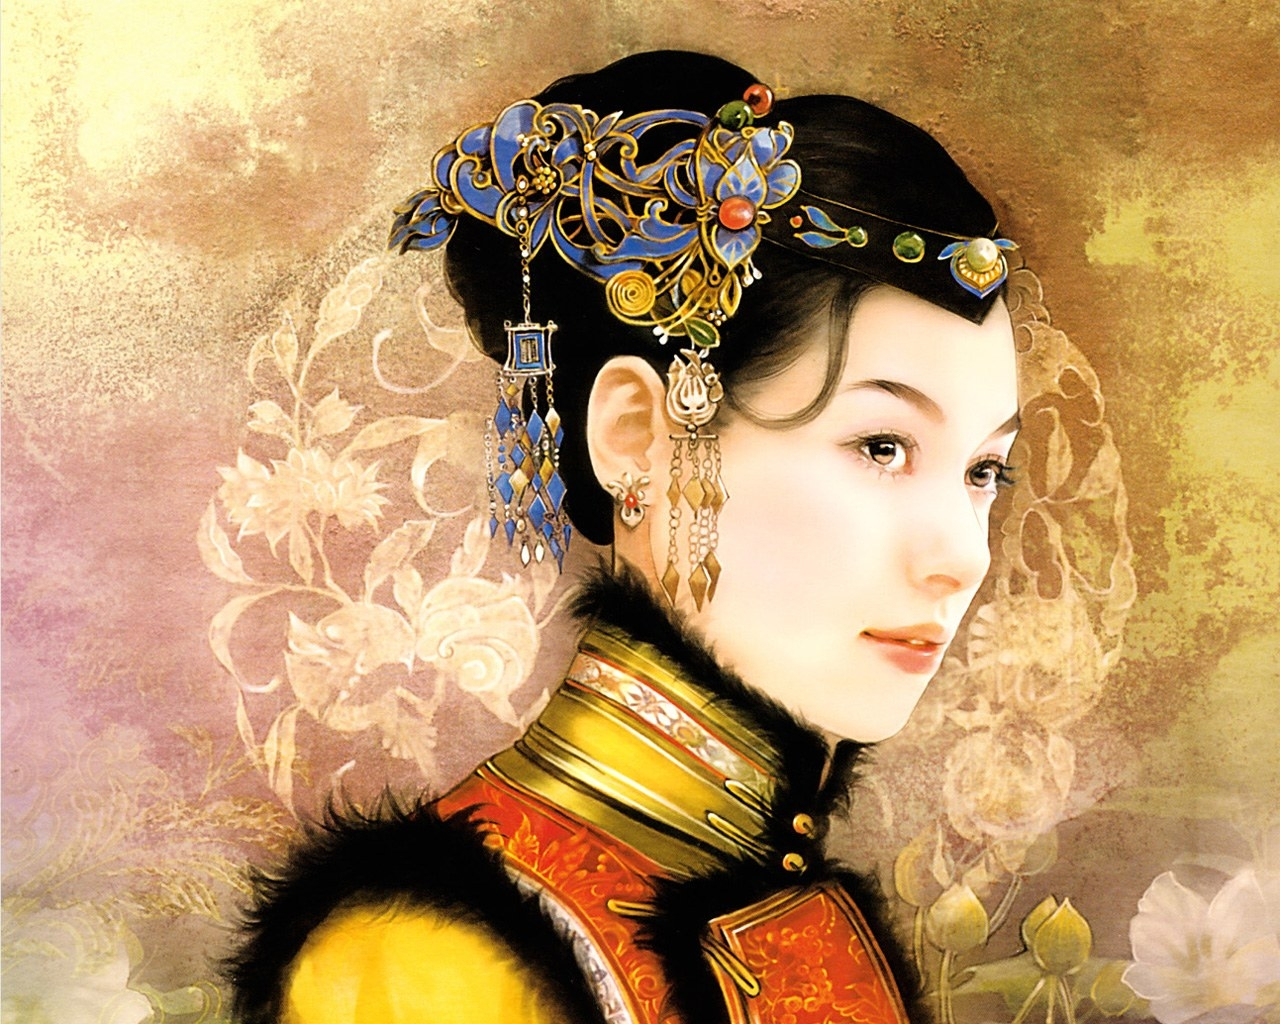 HQ The Ancient Chinese Beauty Wallpapers | File 731.64Kb